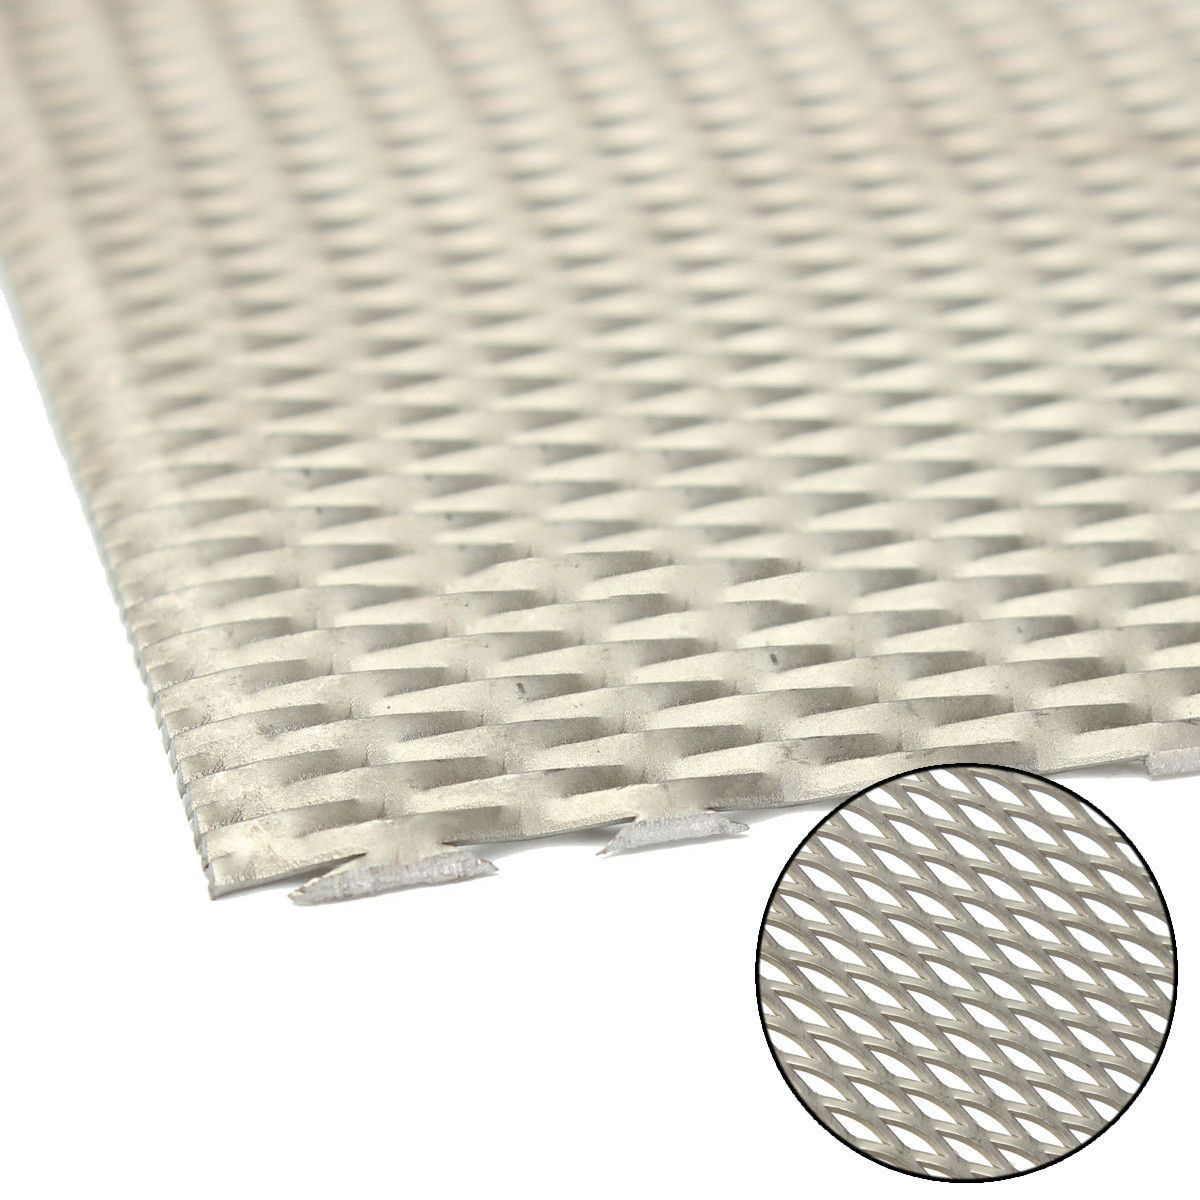 1pc Practical Metal Titanium Mesh Sheet Heat Corrosion Resistance Perforated Expanded Plate 200mm*300mm*0.5mm Mayitr 1pc recycled metal titanium mesh sheet with corrosion resistance 50mmx165mm electrode for electrolysis